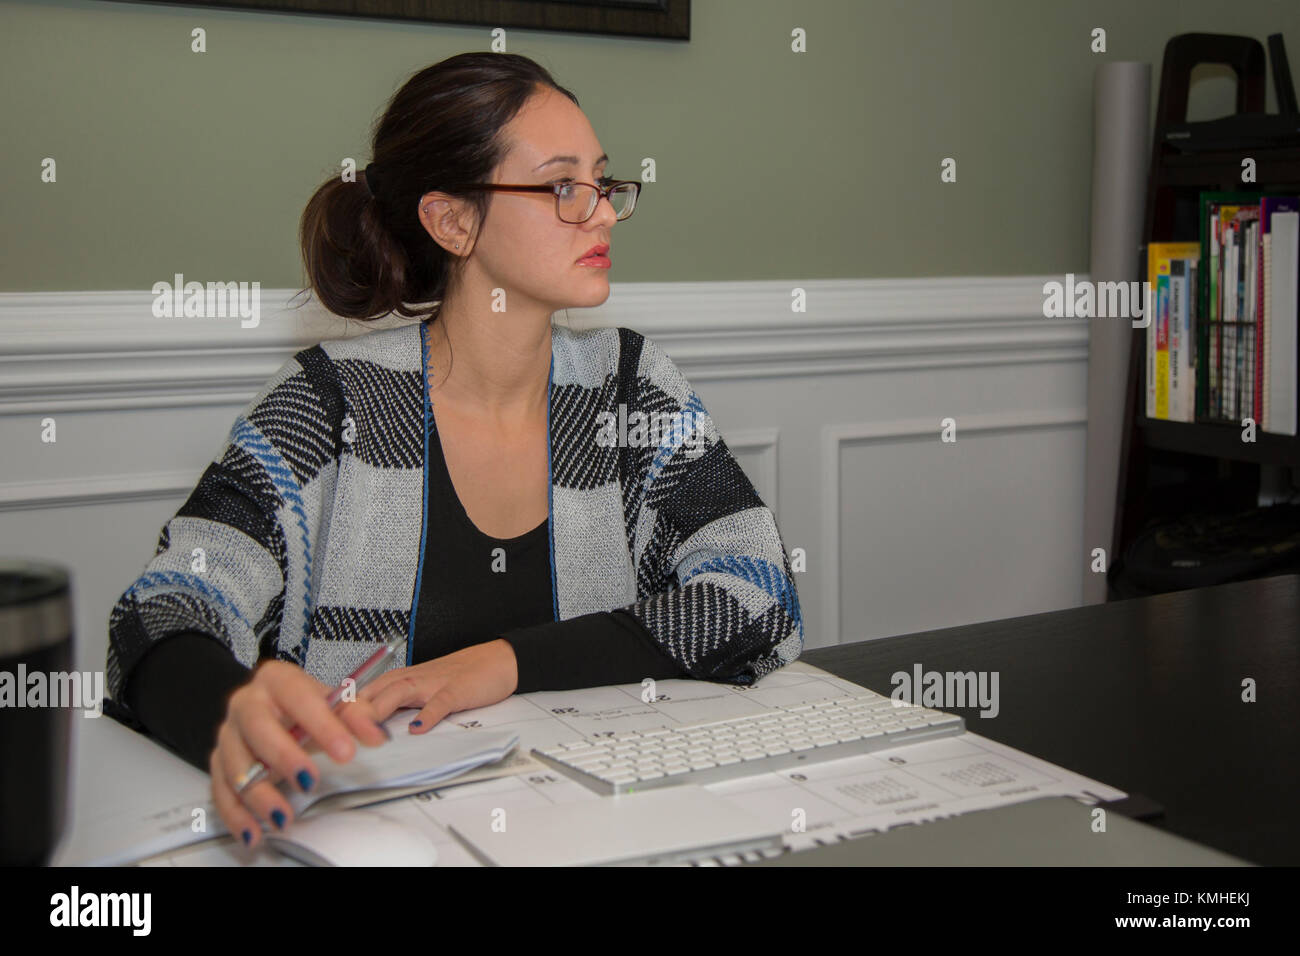 Beautiful 20-25 year old white female studying in her home office. - Stock Image